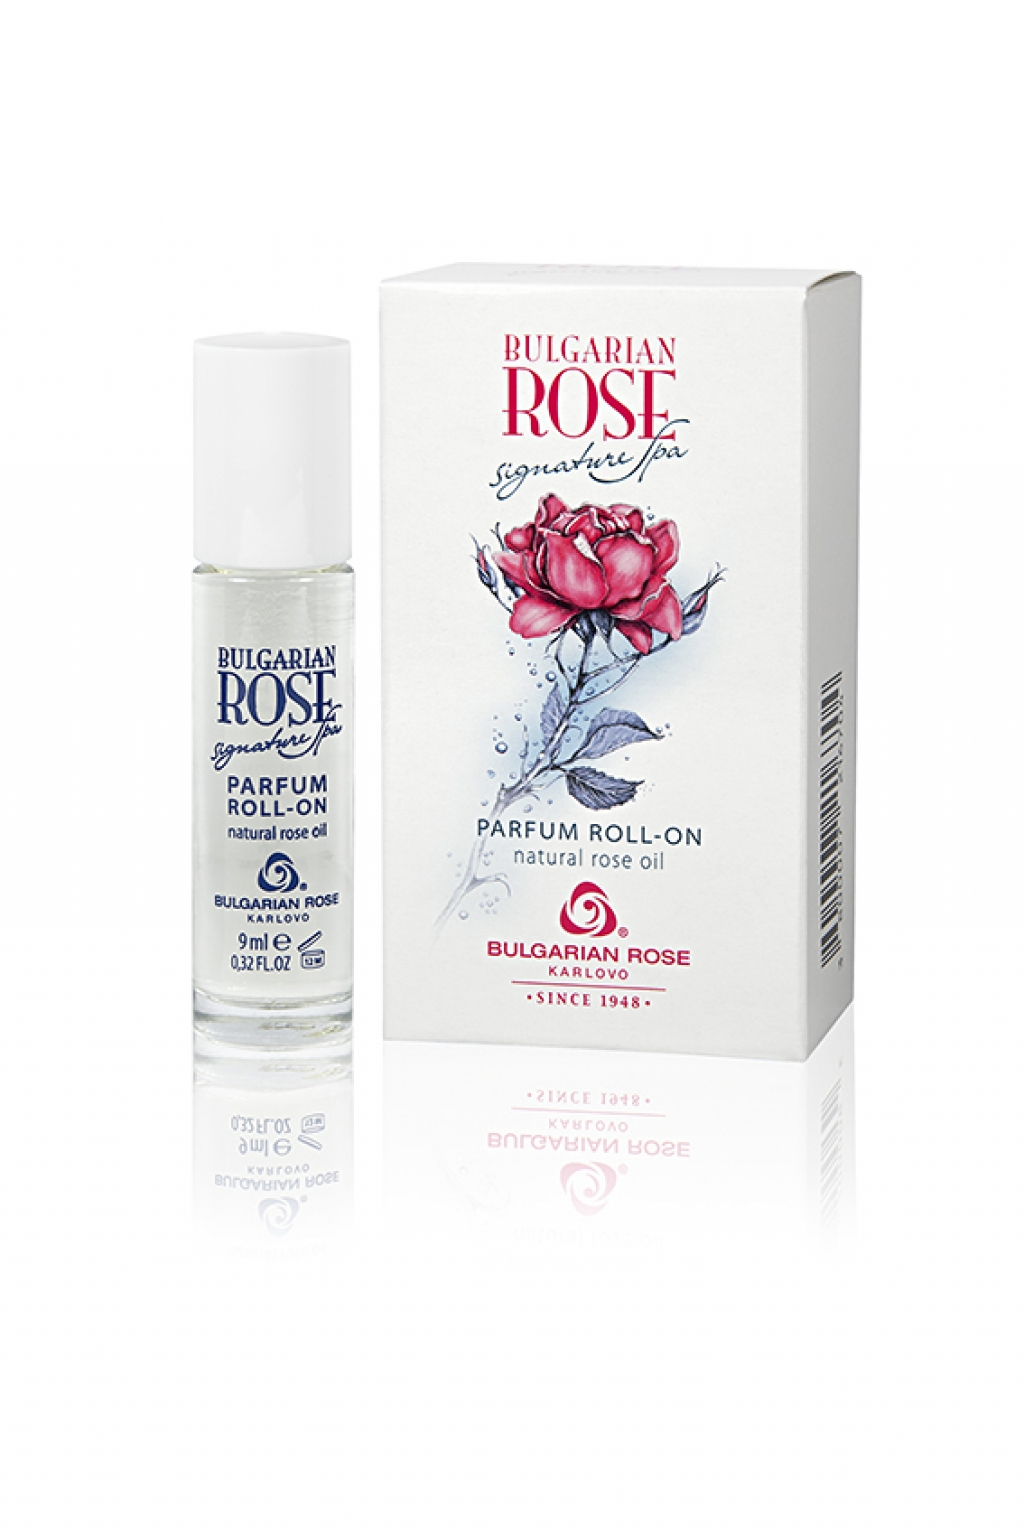 Roll-on perfume with rose and exotic fruits Signature Spa Bulgarian Rose Karlovo